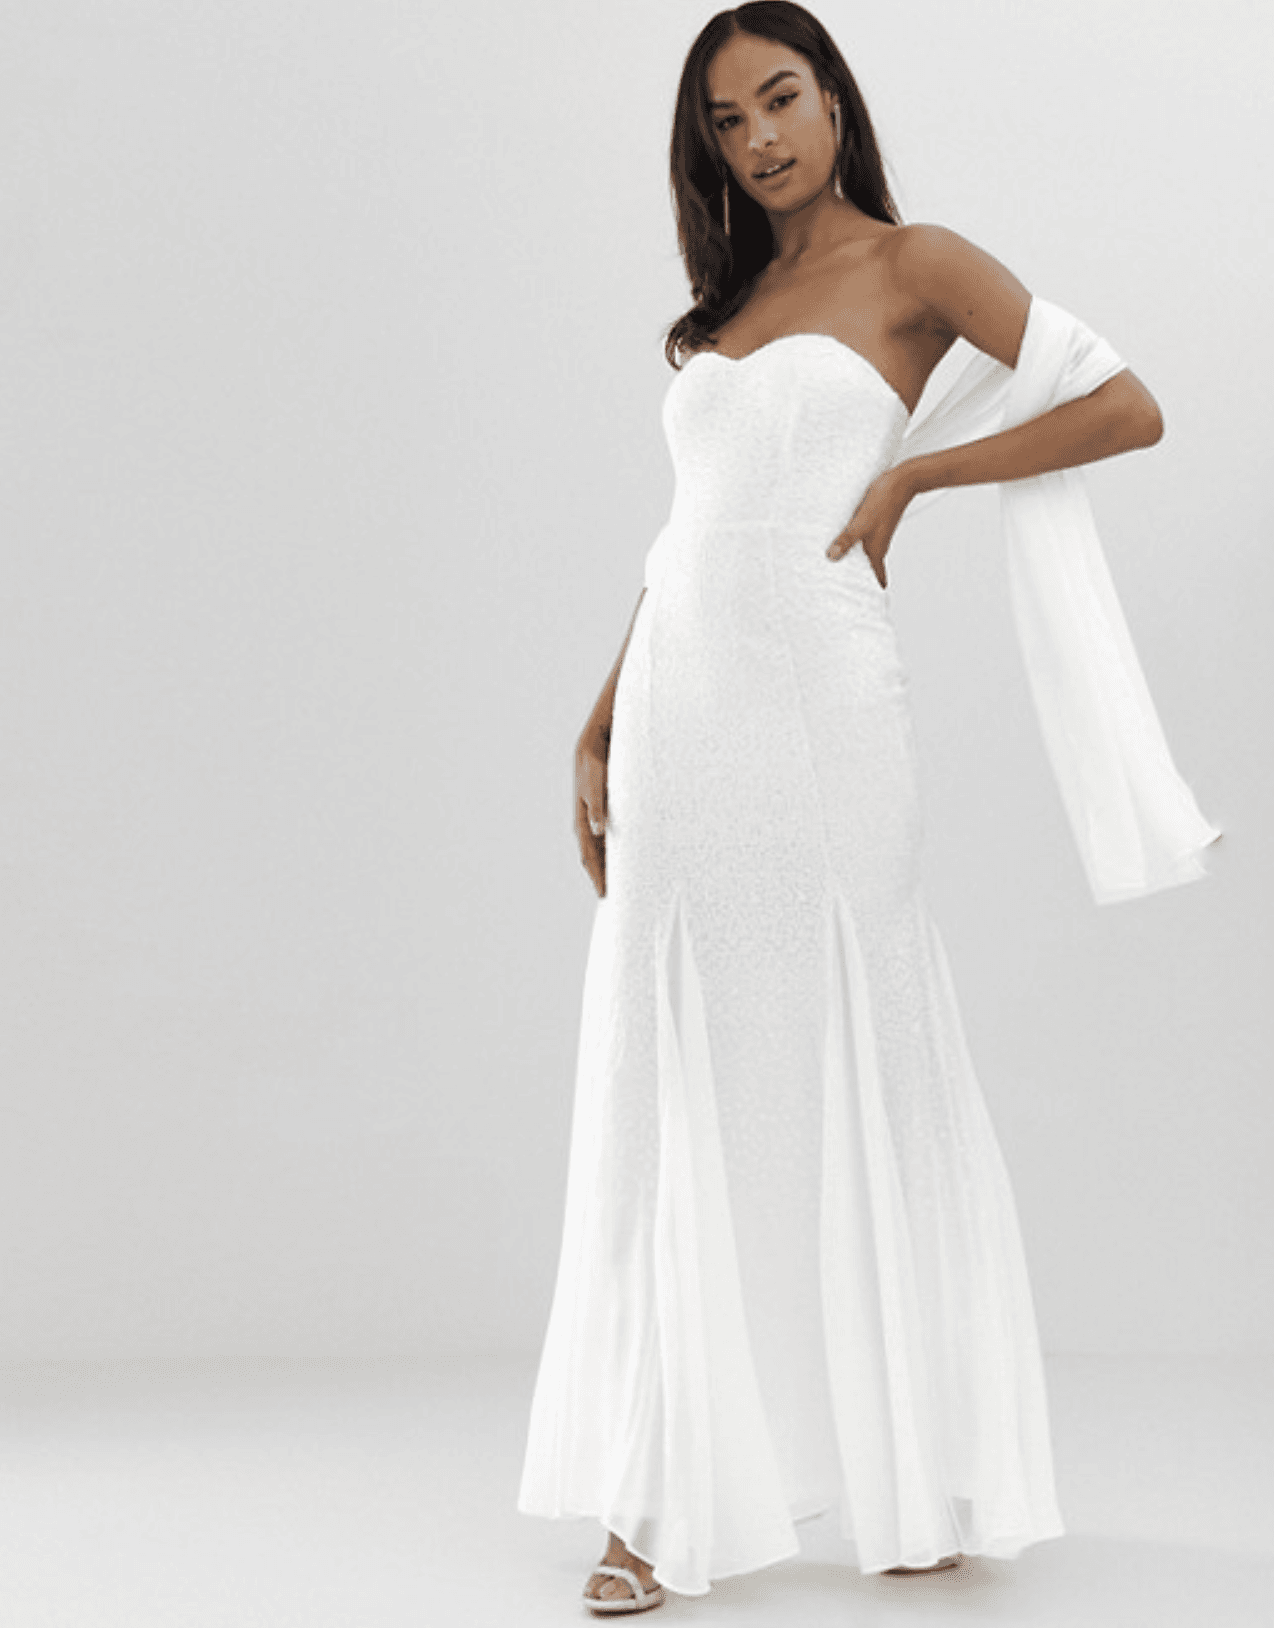 22 Cheap Affordable Bridal Gowns And Wedding Dresses,Classy Formal Wedding Guest Dresses